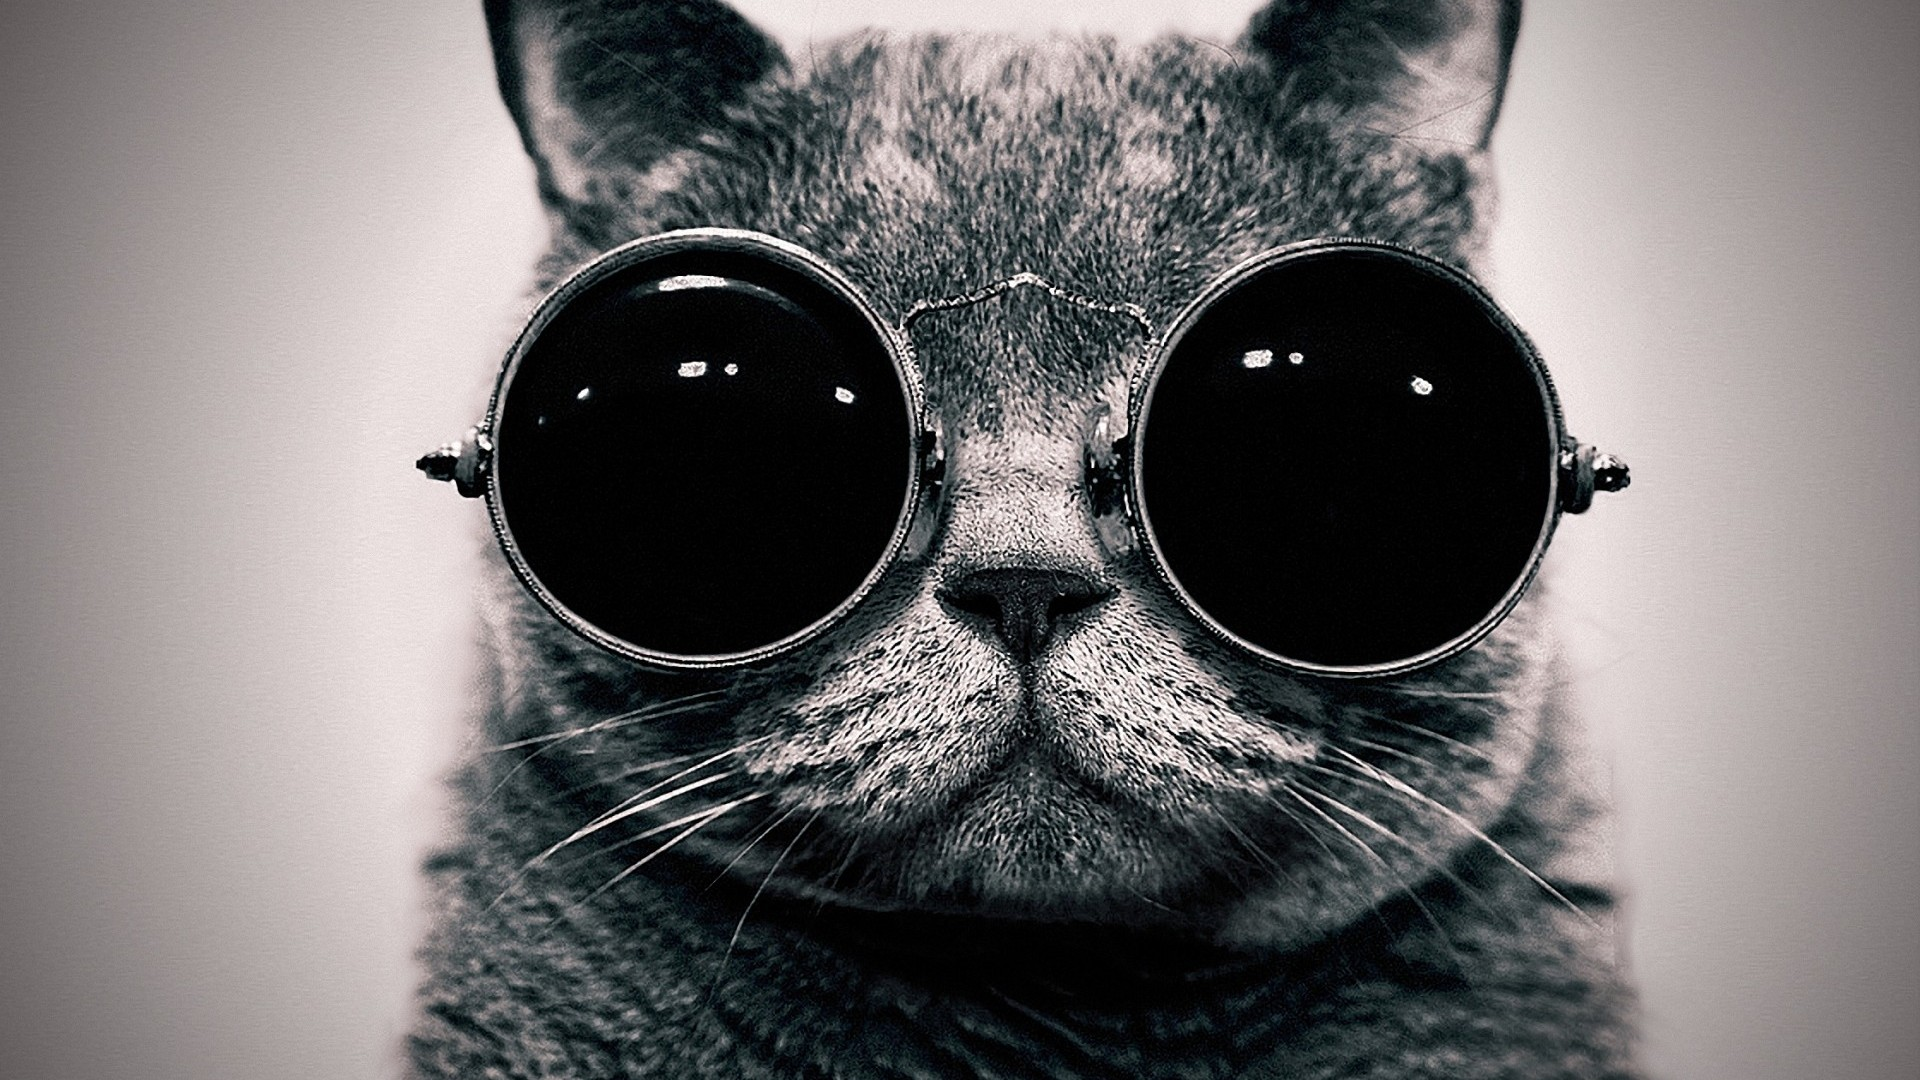 Cool cat hd wallpapers - Cool backgrounds of cats ...